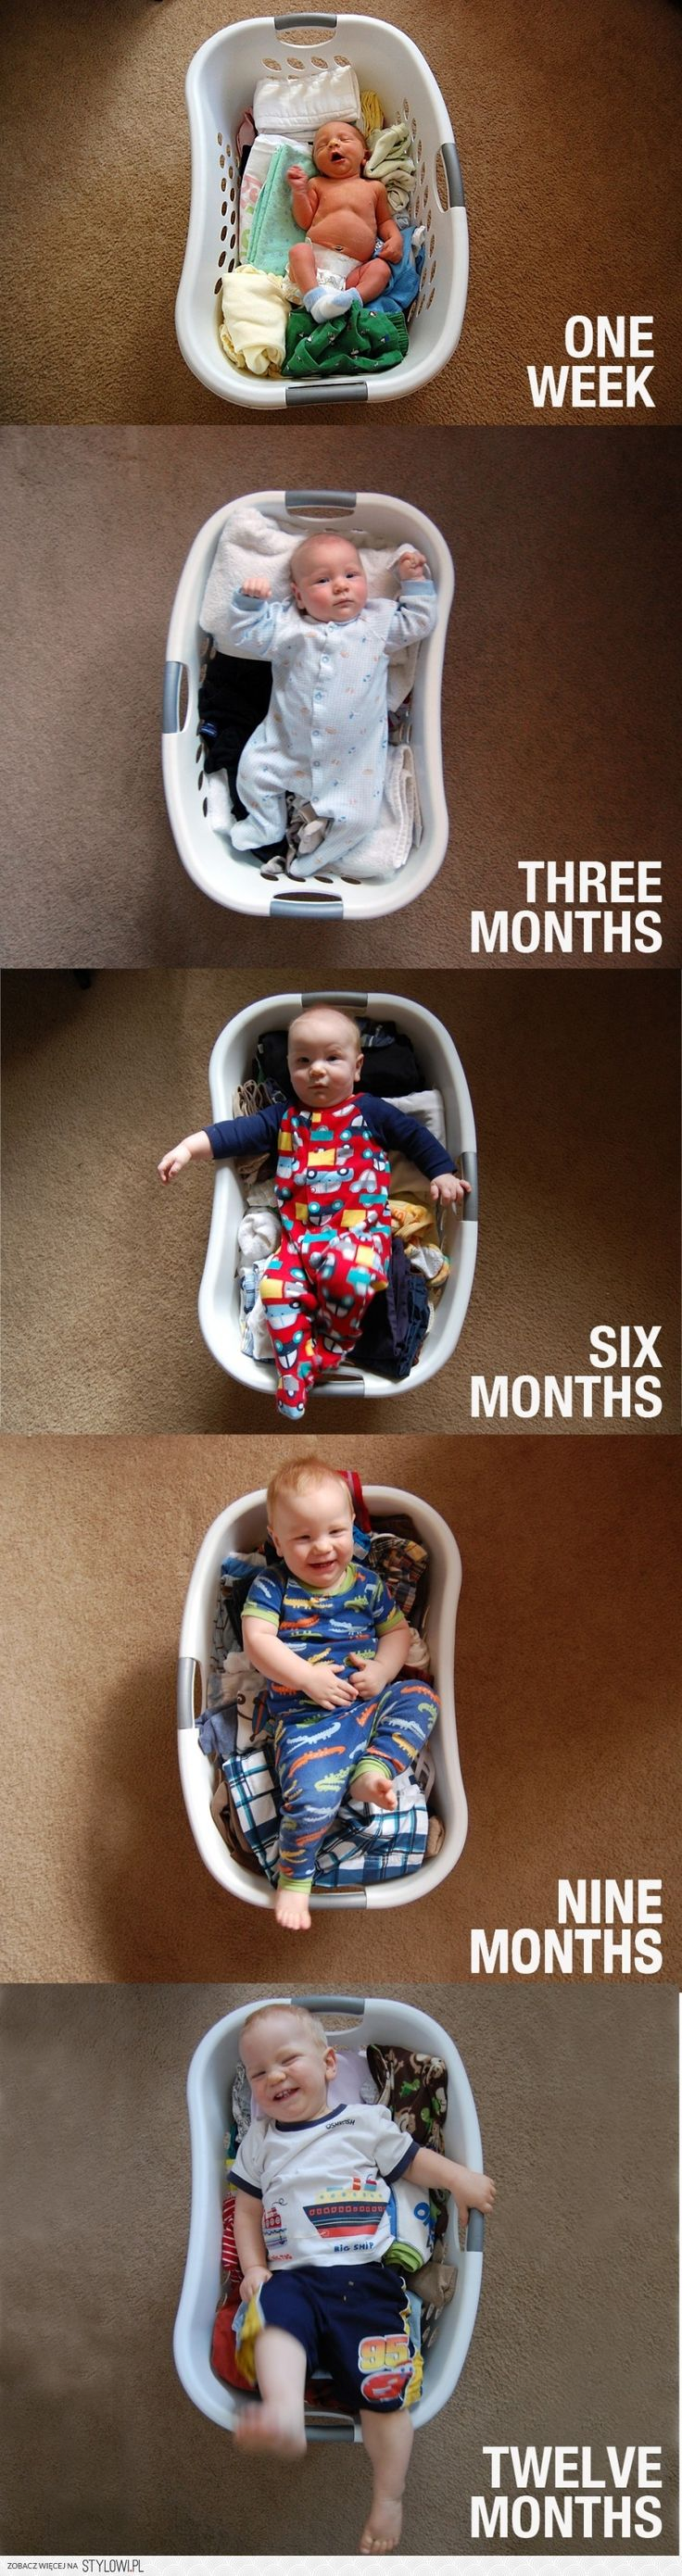 It's so easy to show, how your baby gets bigger and bigger!